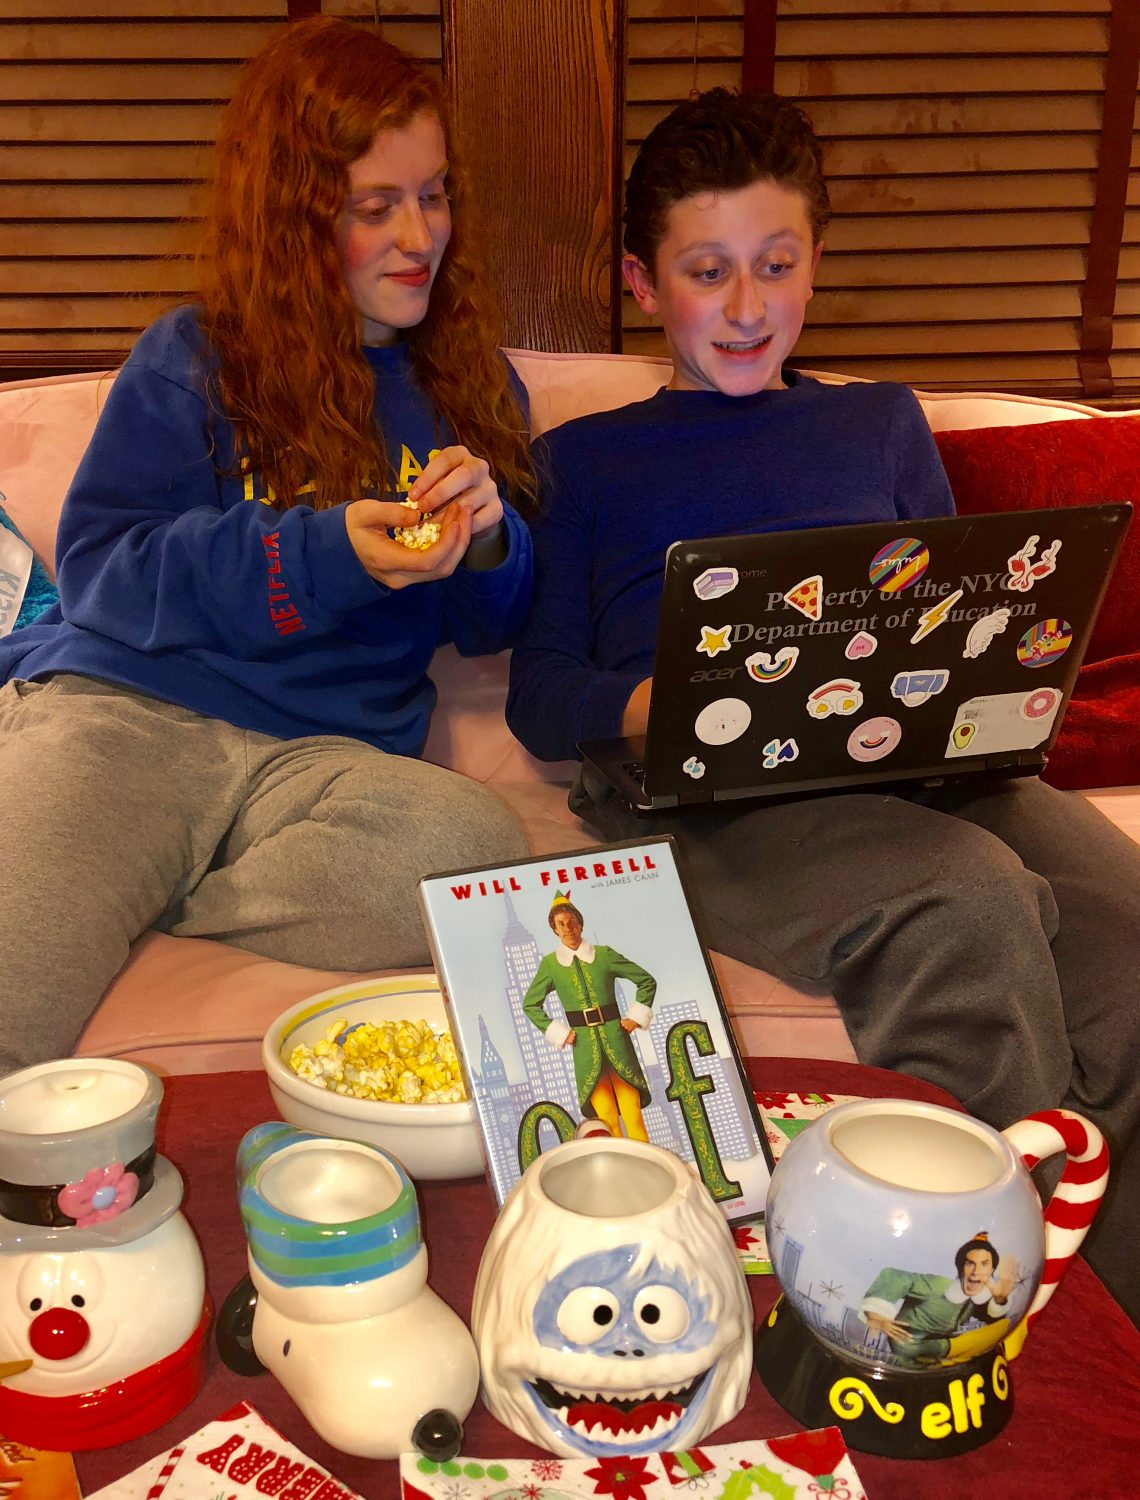 Essential Family Movie Night Crafts and Treats